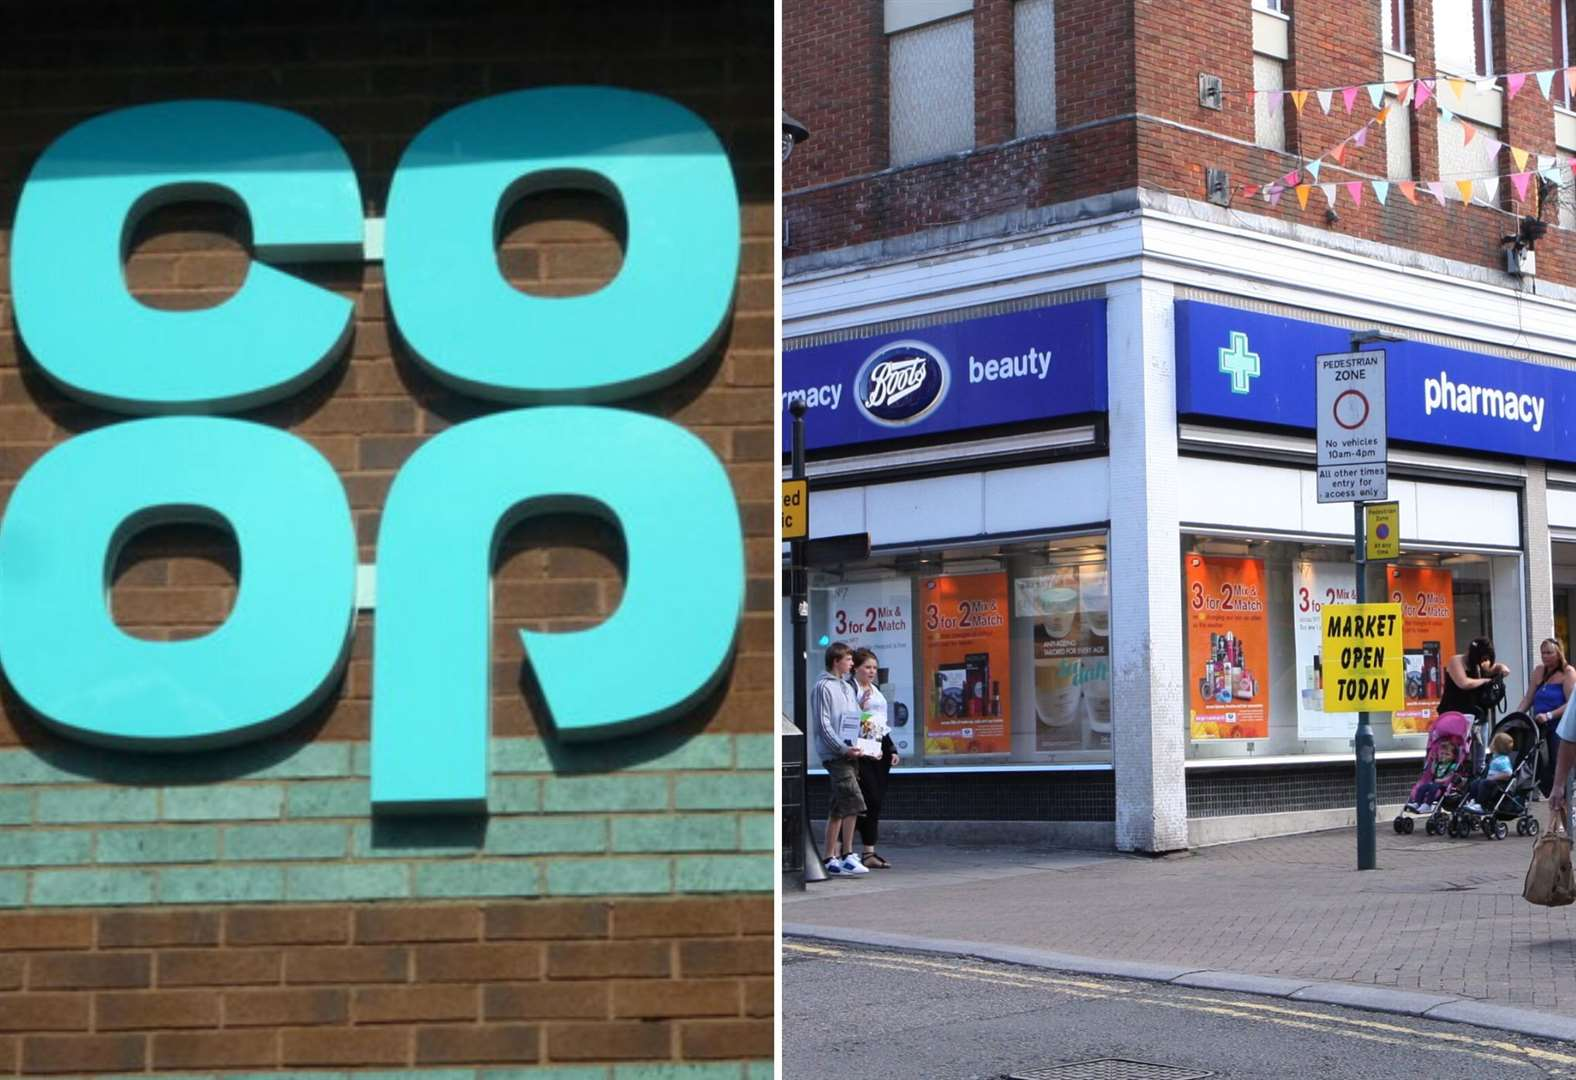 Man charged after attempted Co-op robbery and £702 Boots theft